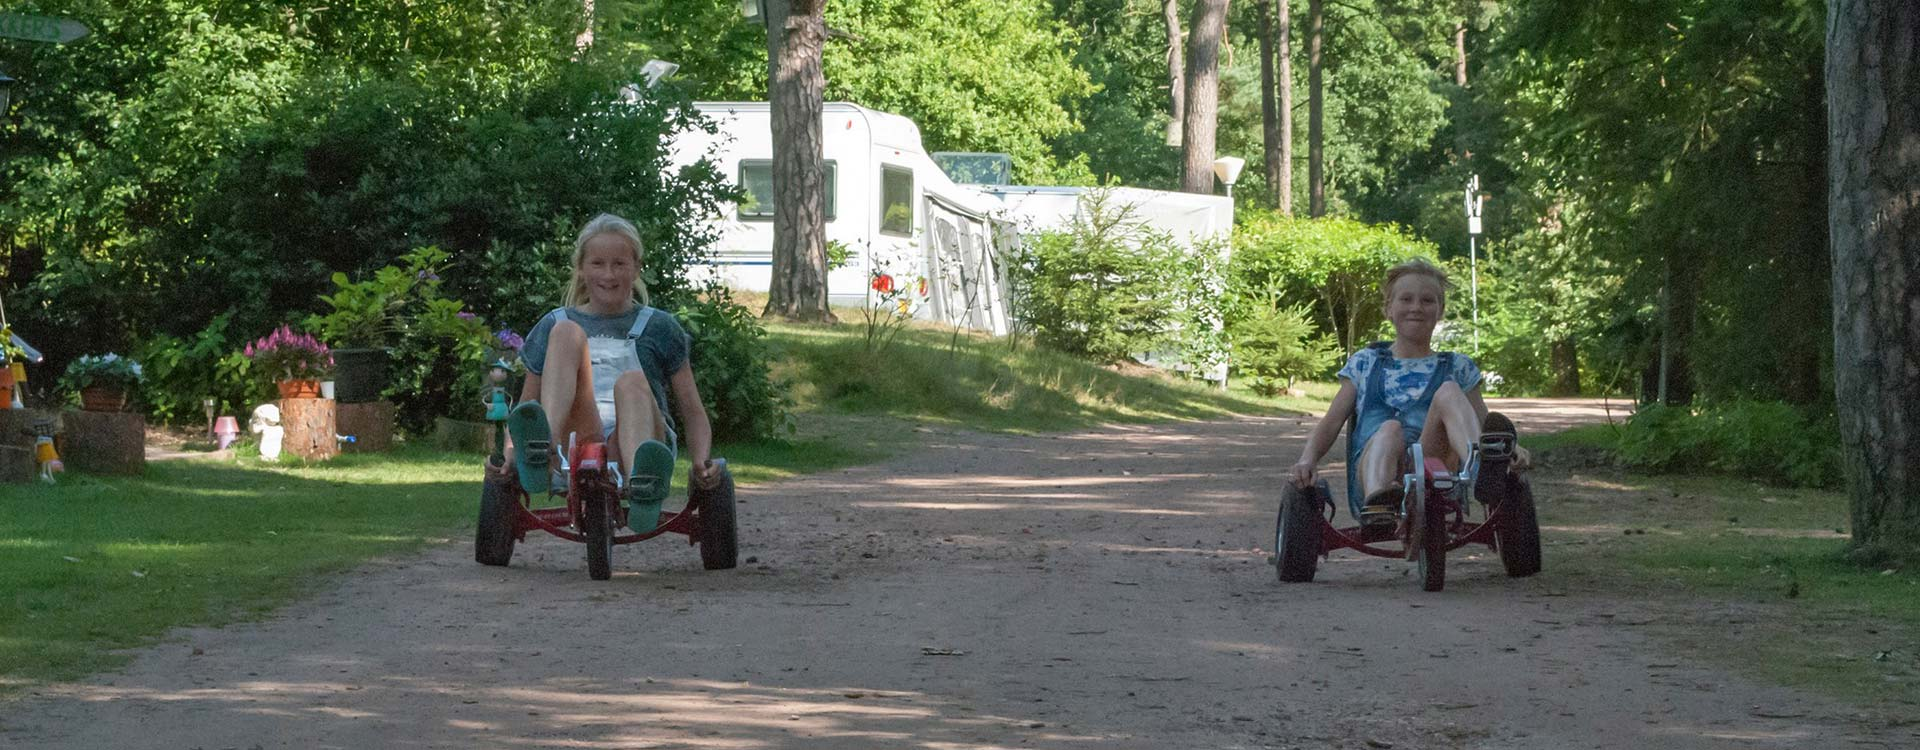 camping-diever-familiecamping-in-het-bos